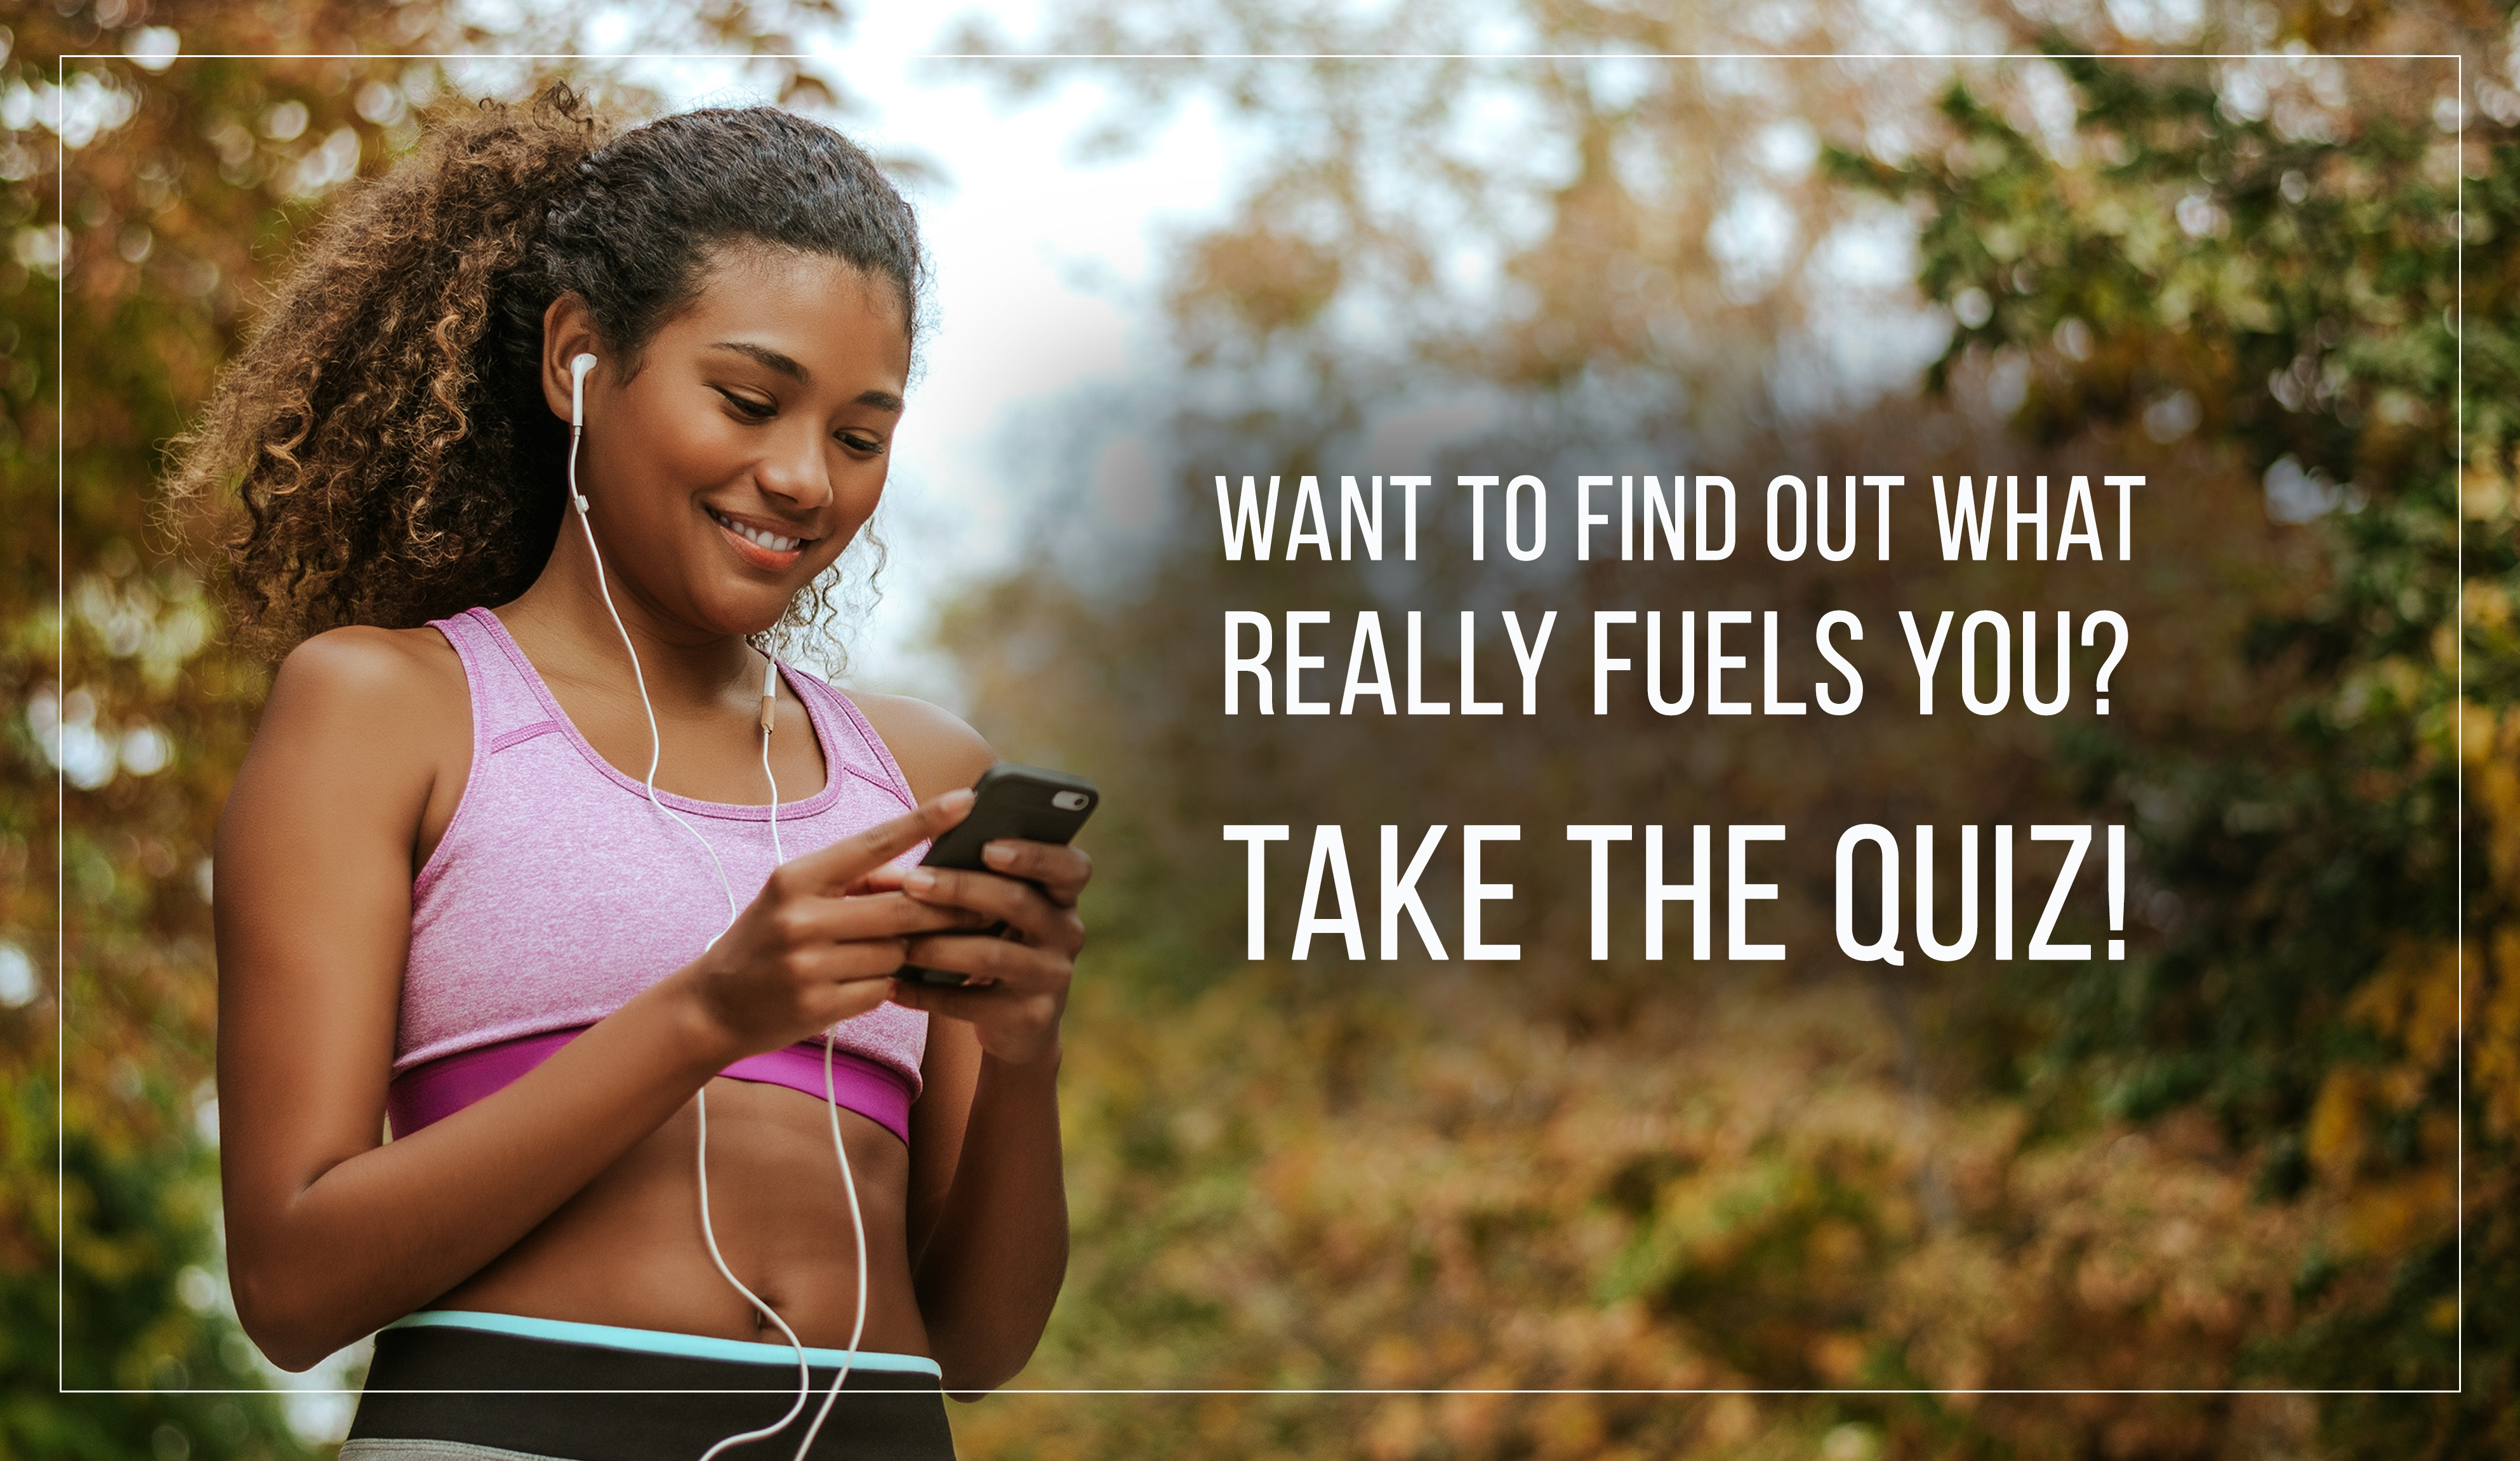 What Fuels You Quiz